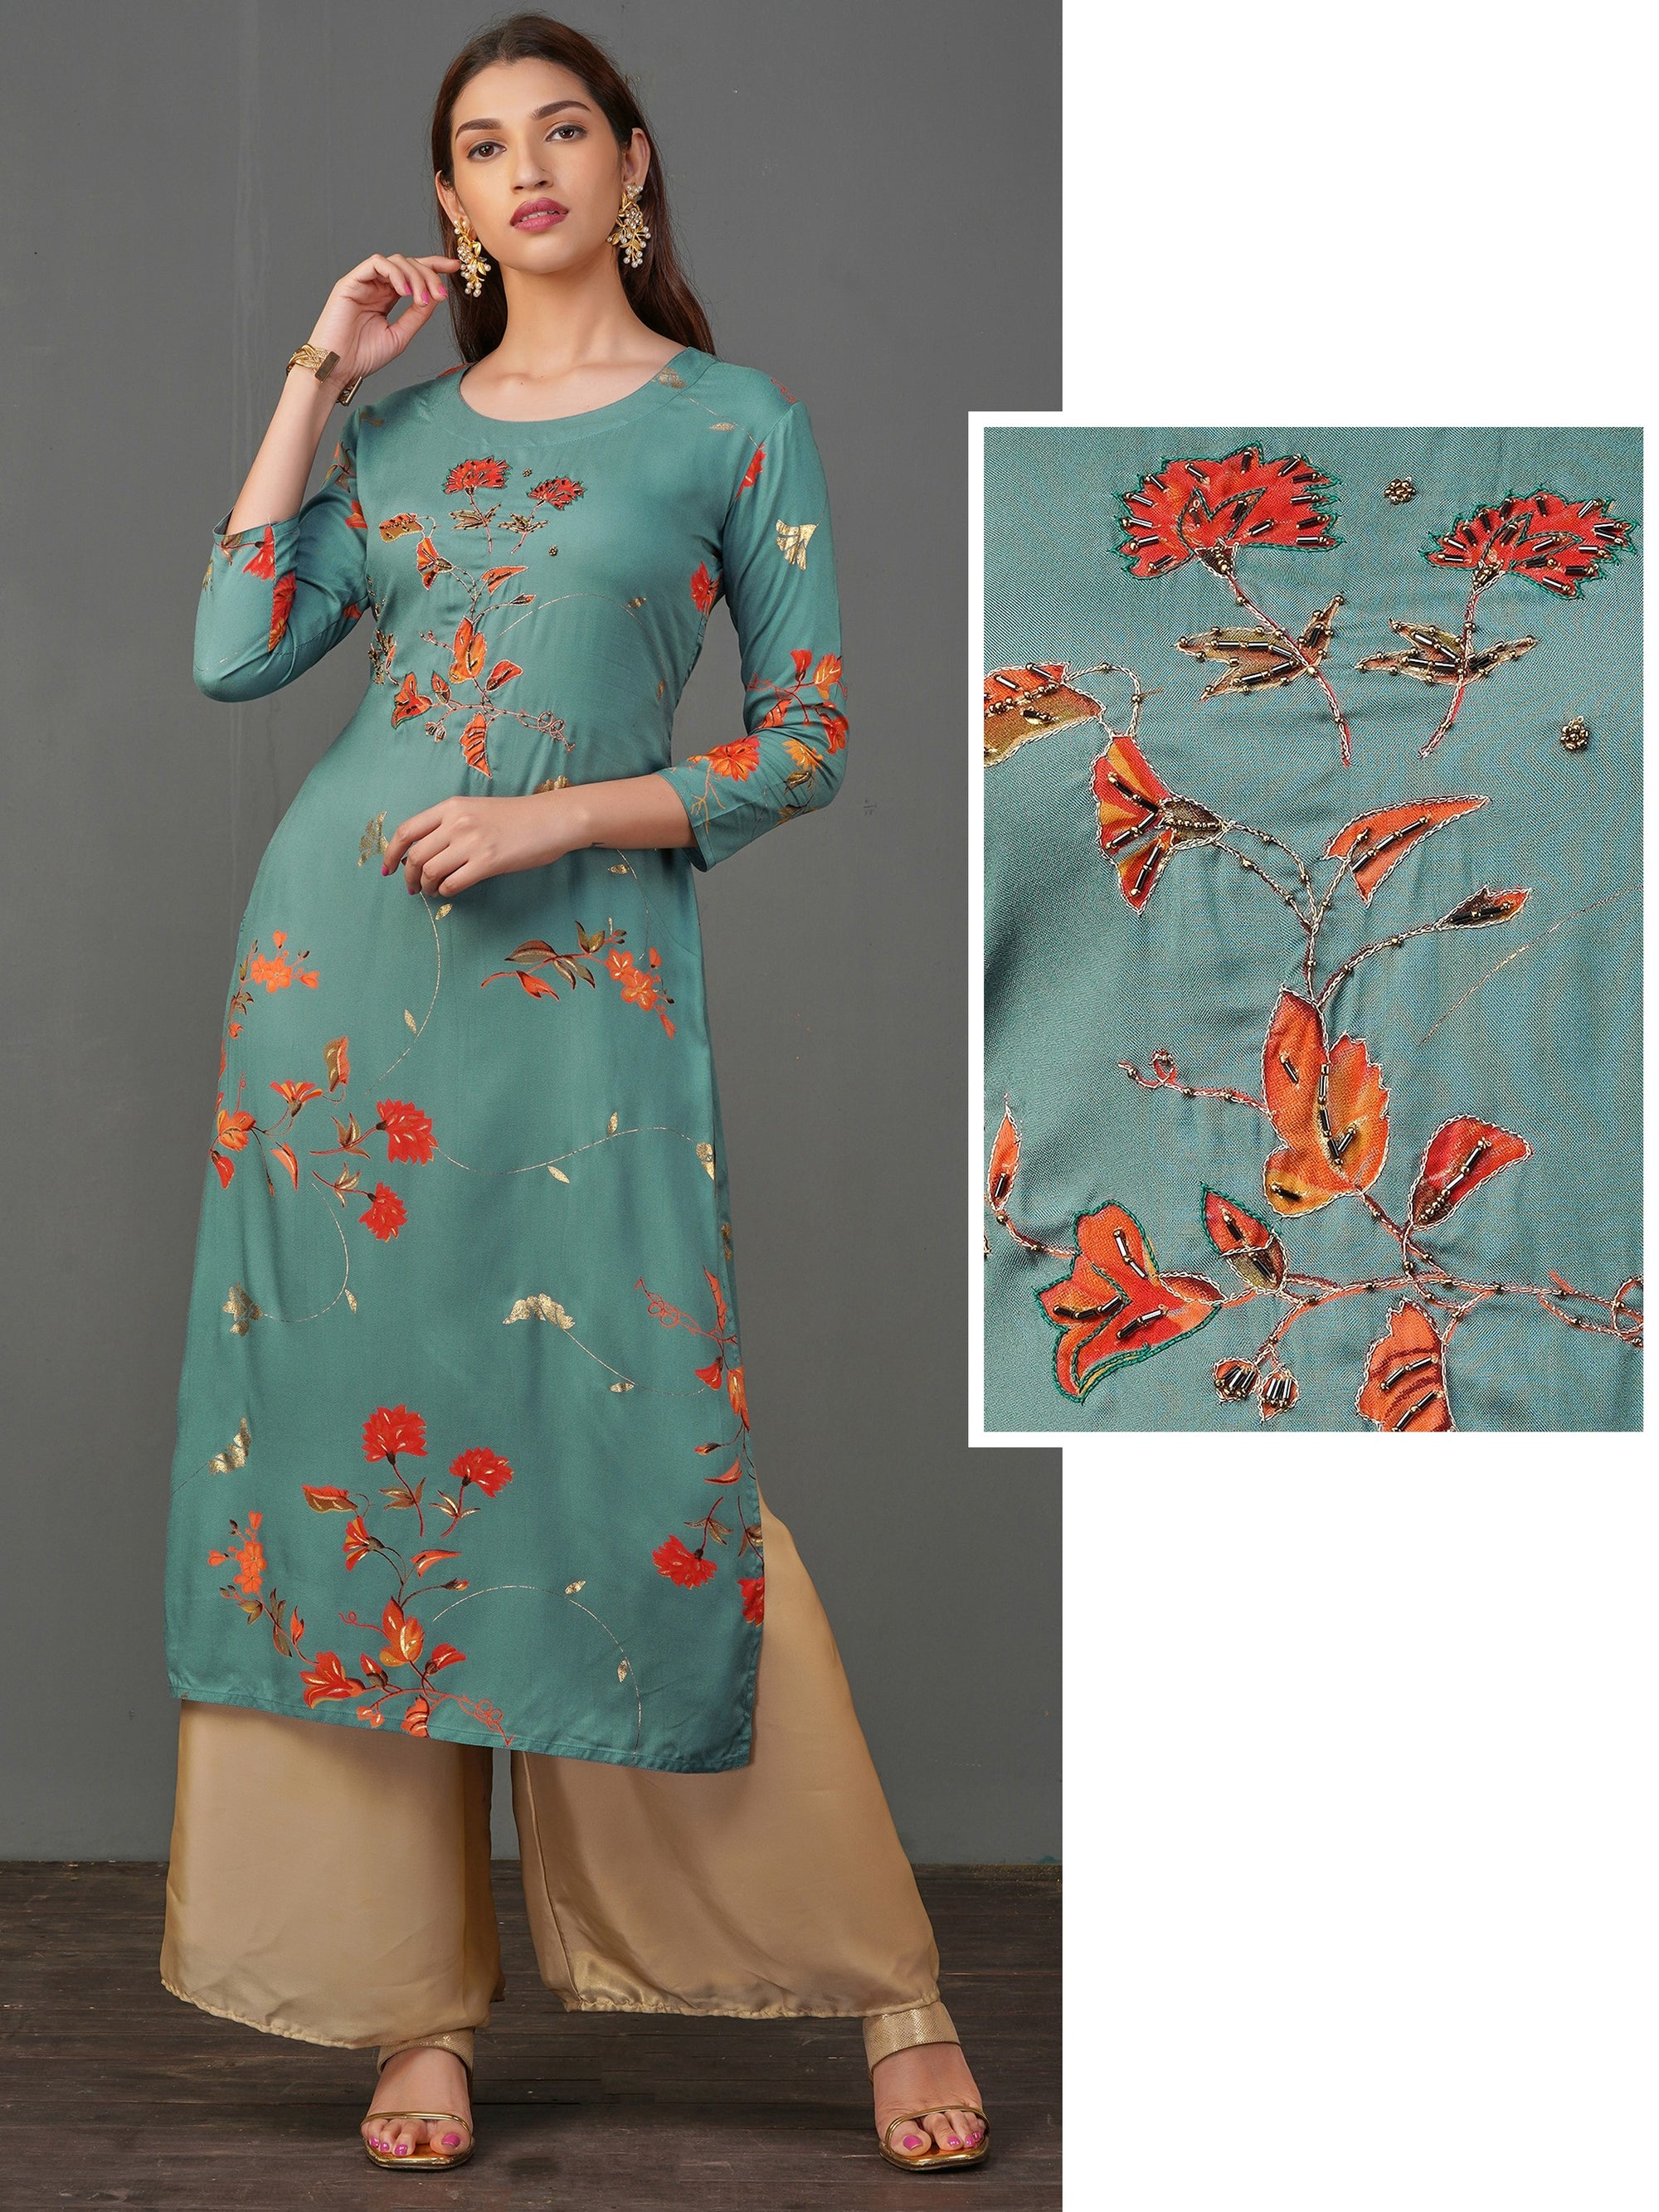 Cutdana Detailed Floral Printed Kurti